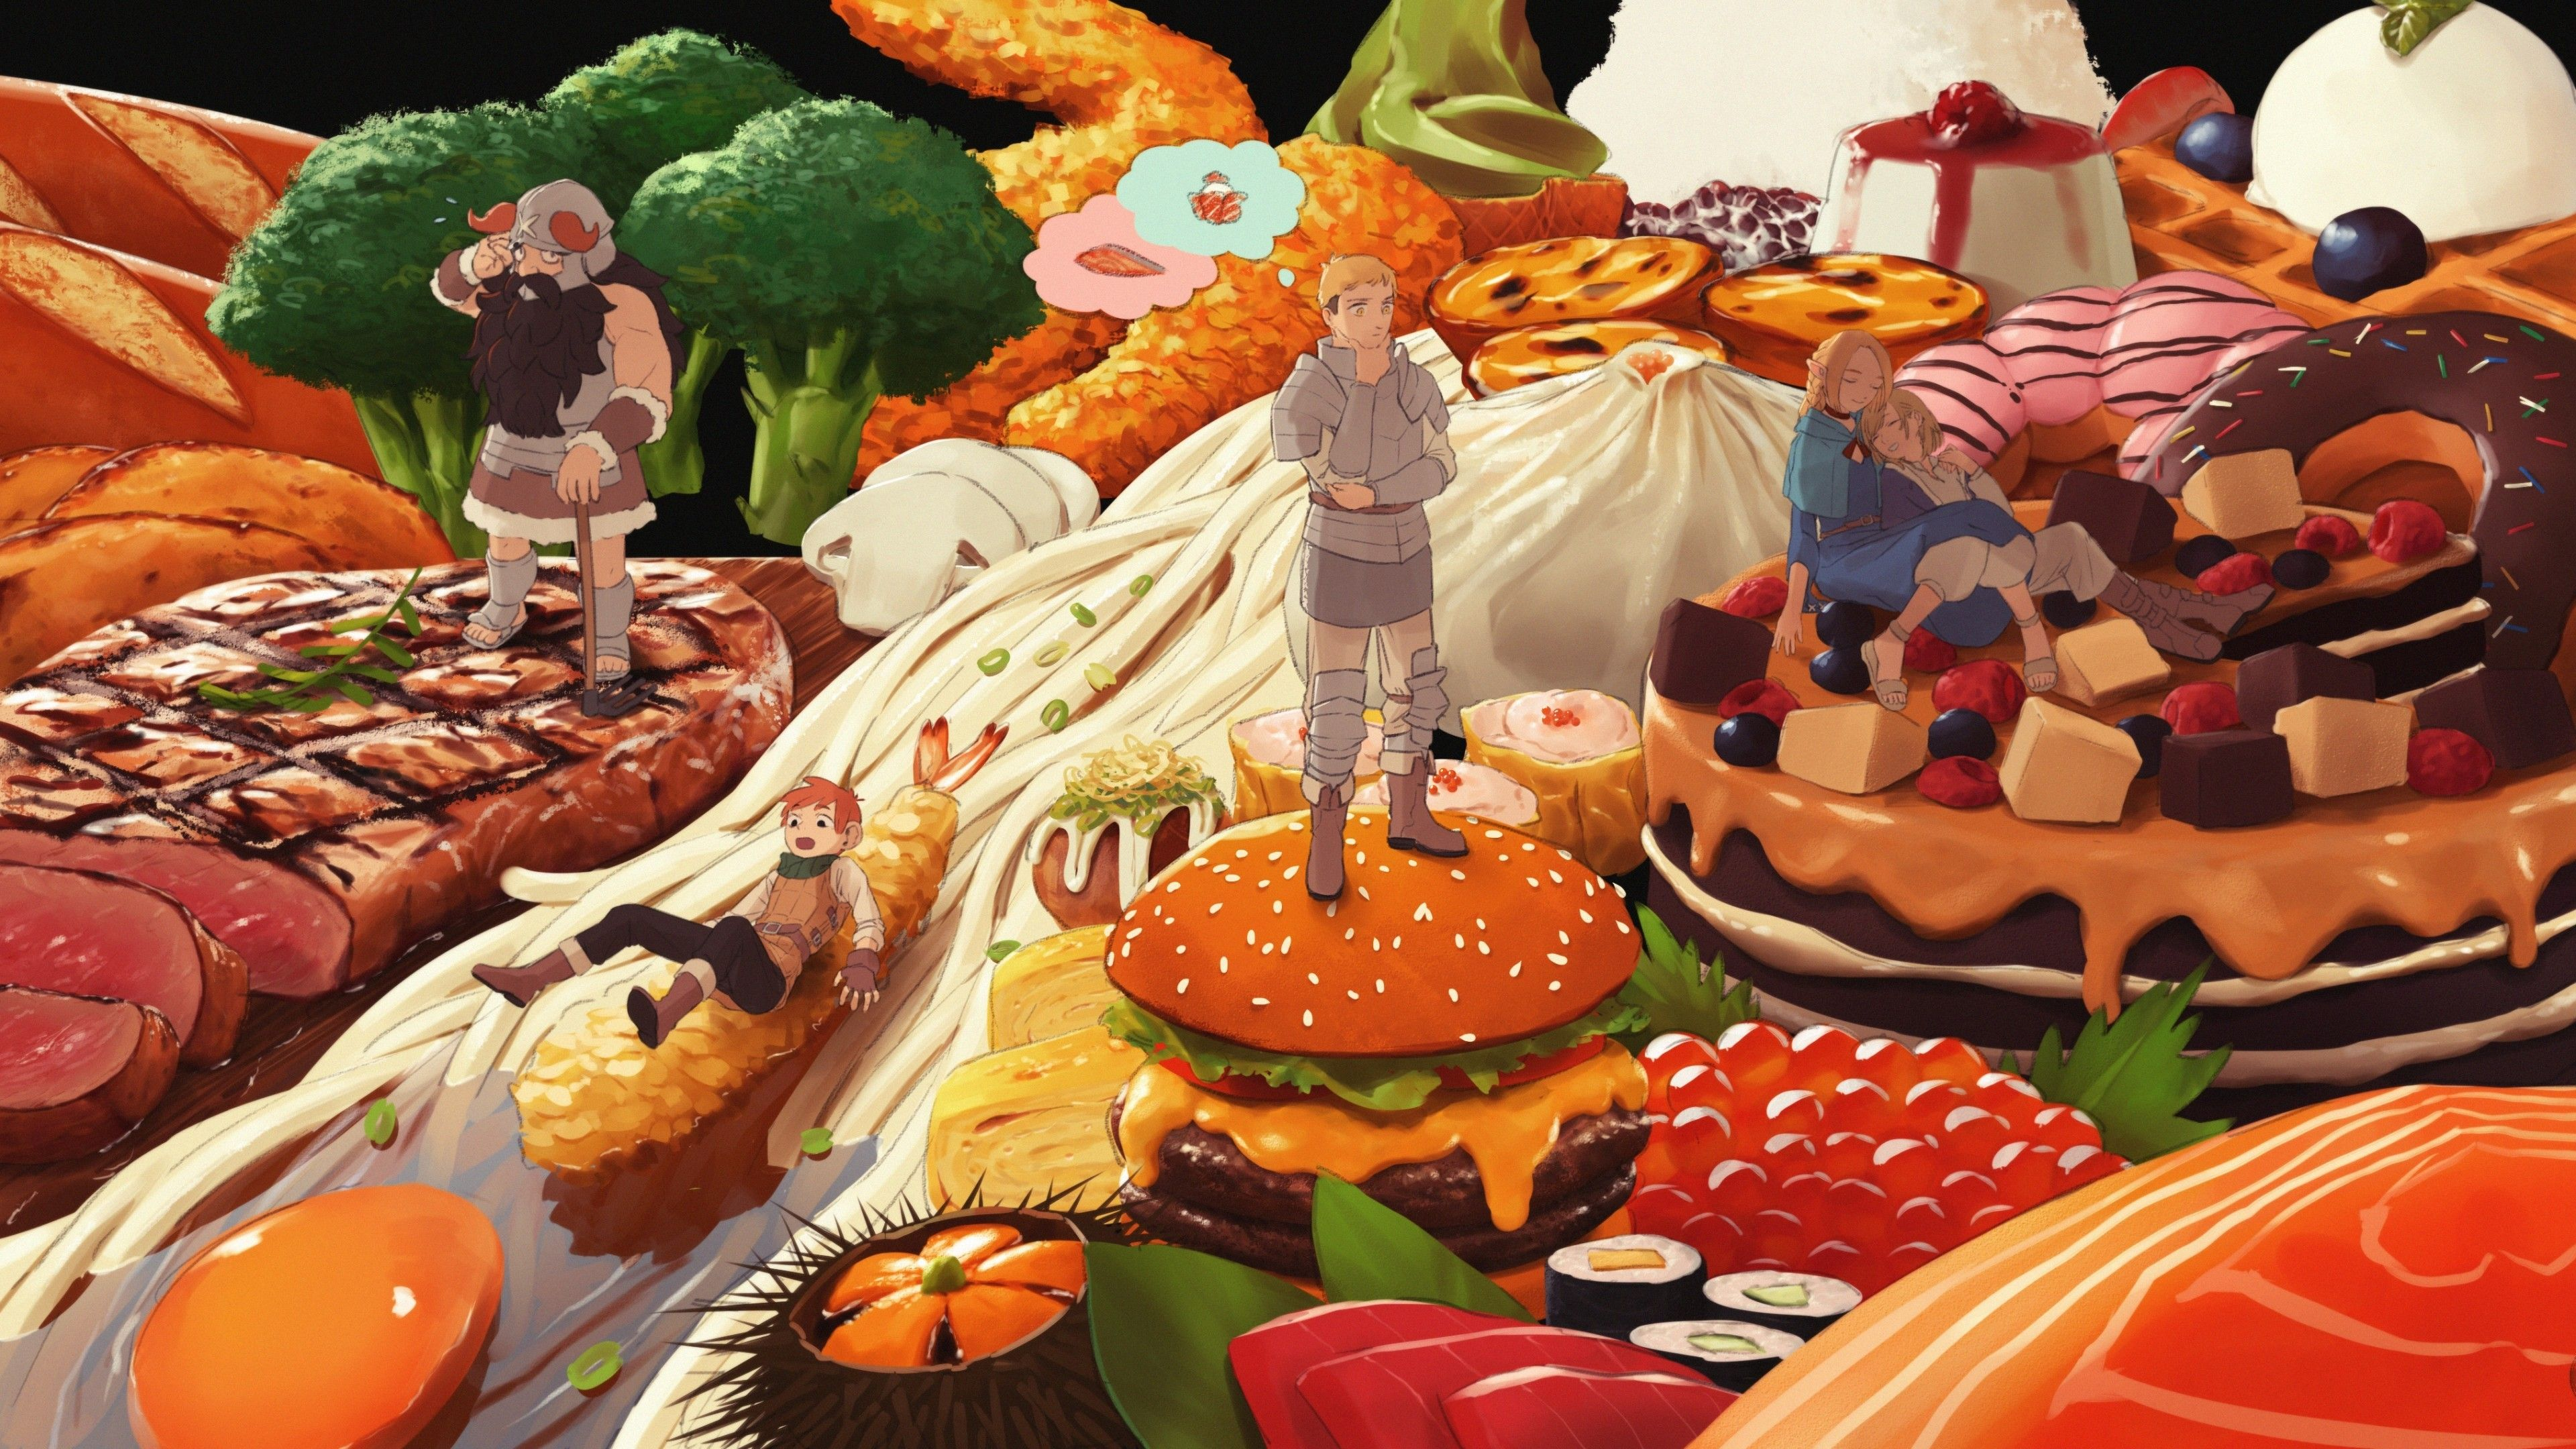 Aesthetic Anime Food Wallpapers - Wallpaper Cave